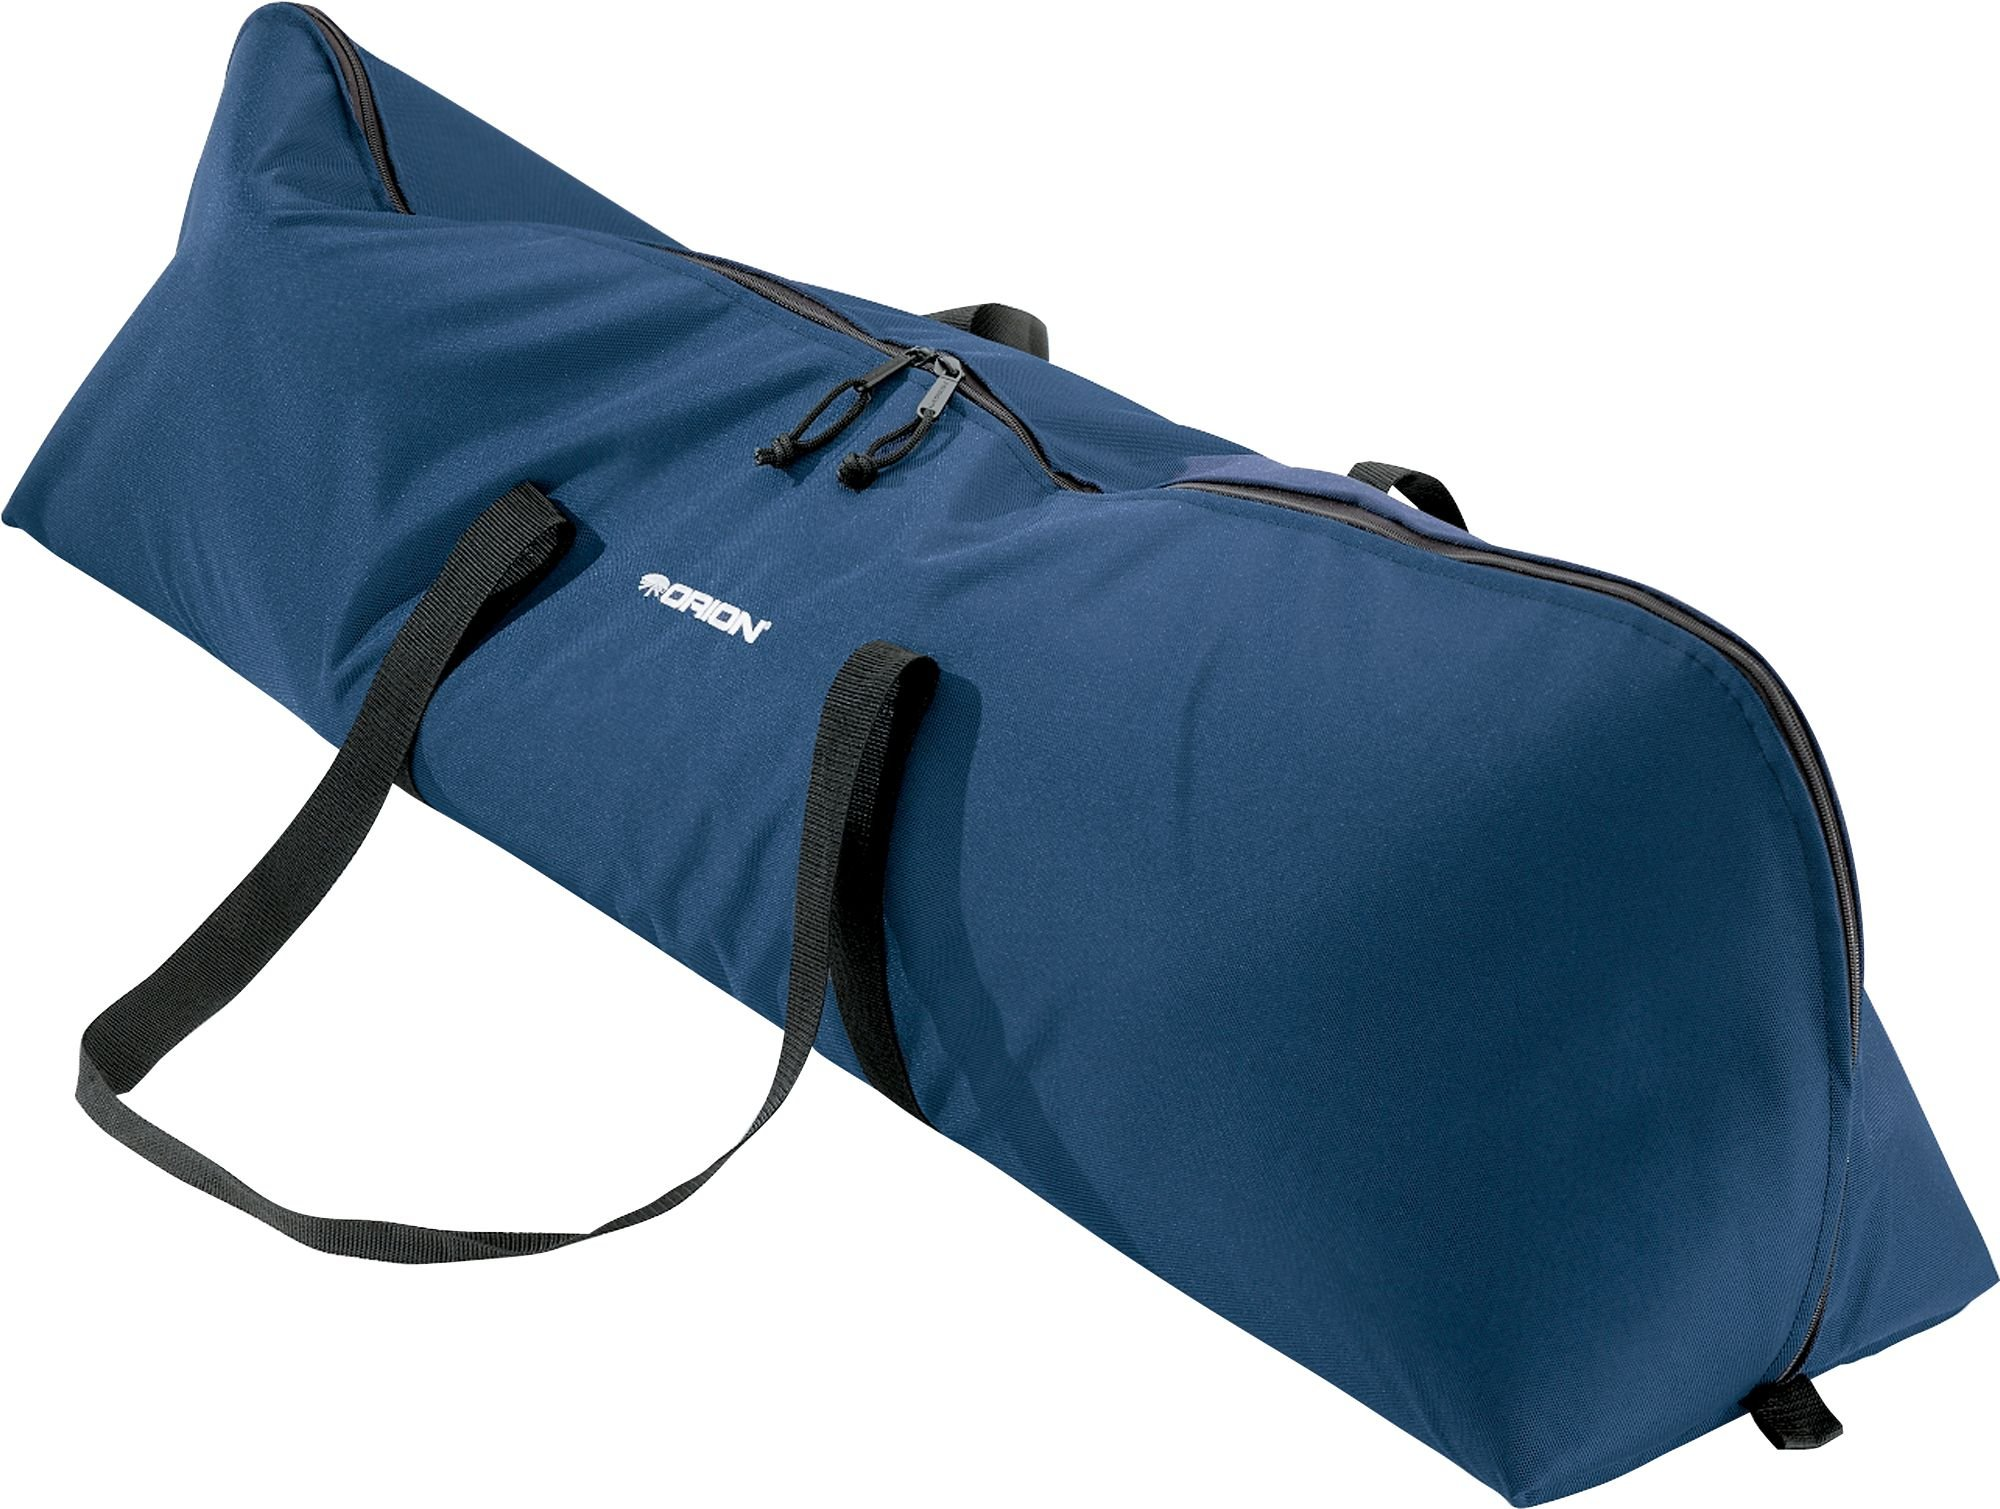 Orion 15164 47x11x14 - Inches Padded Telescope Case by Orion